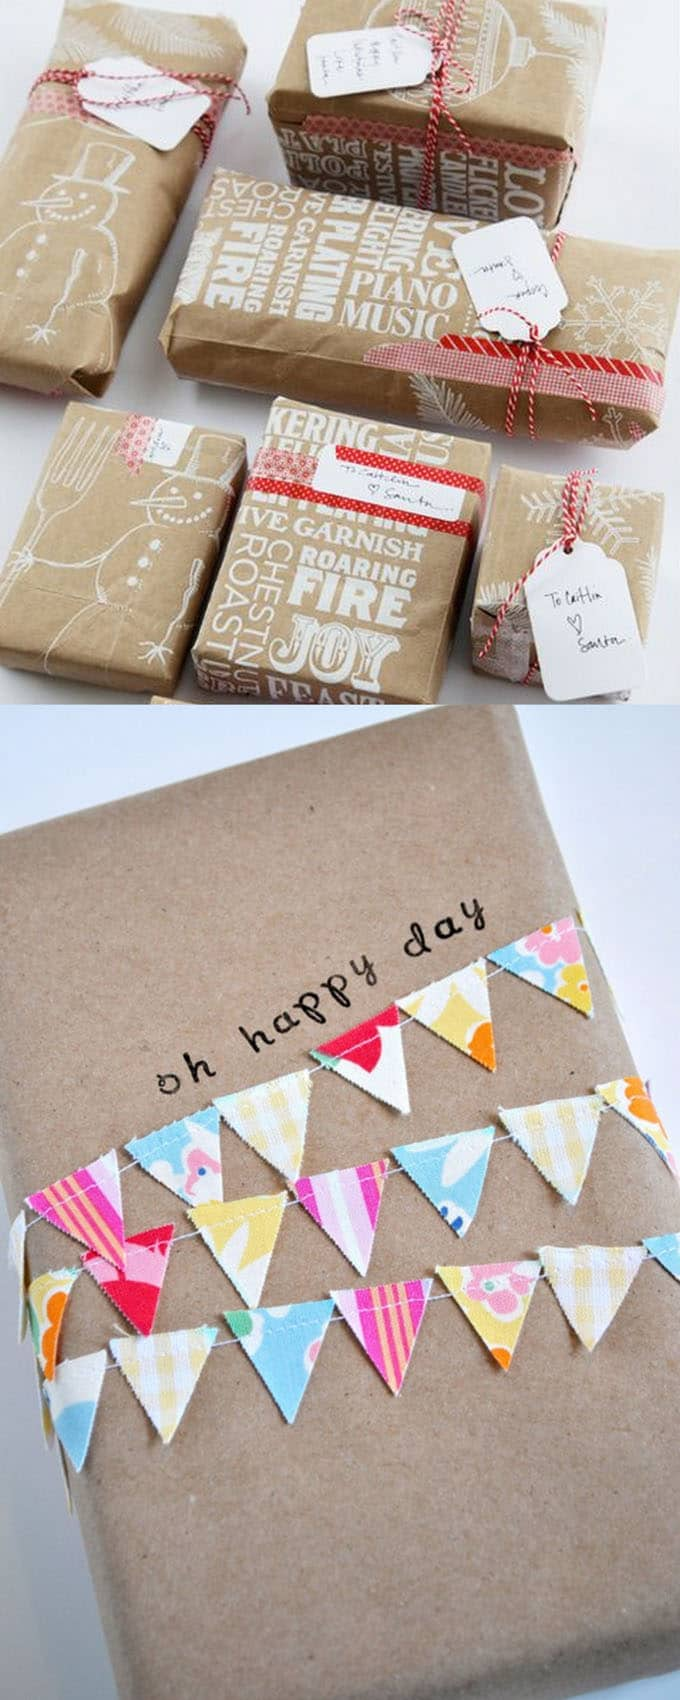 16 gift wrapping hacks apieceofrainbow 8 - 16 Favorite Easy Gift Wrapping Ideas (Many are Free!)